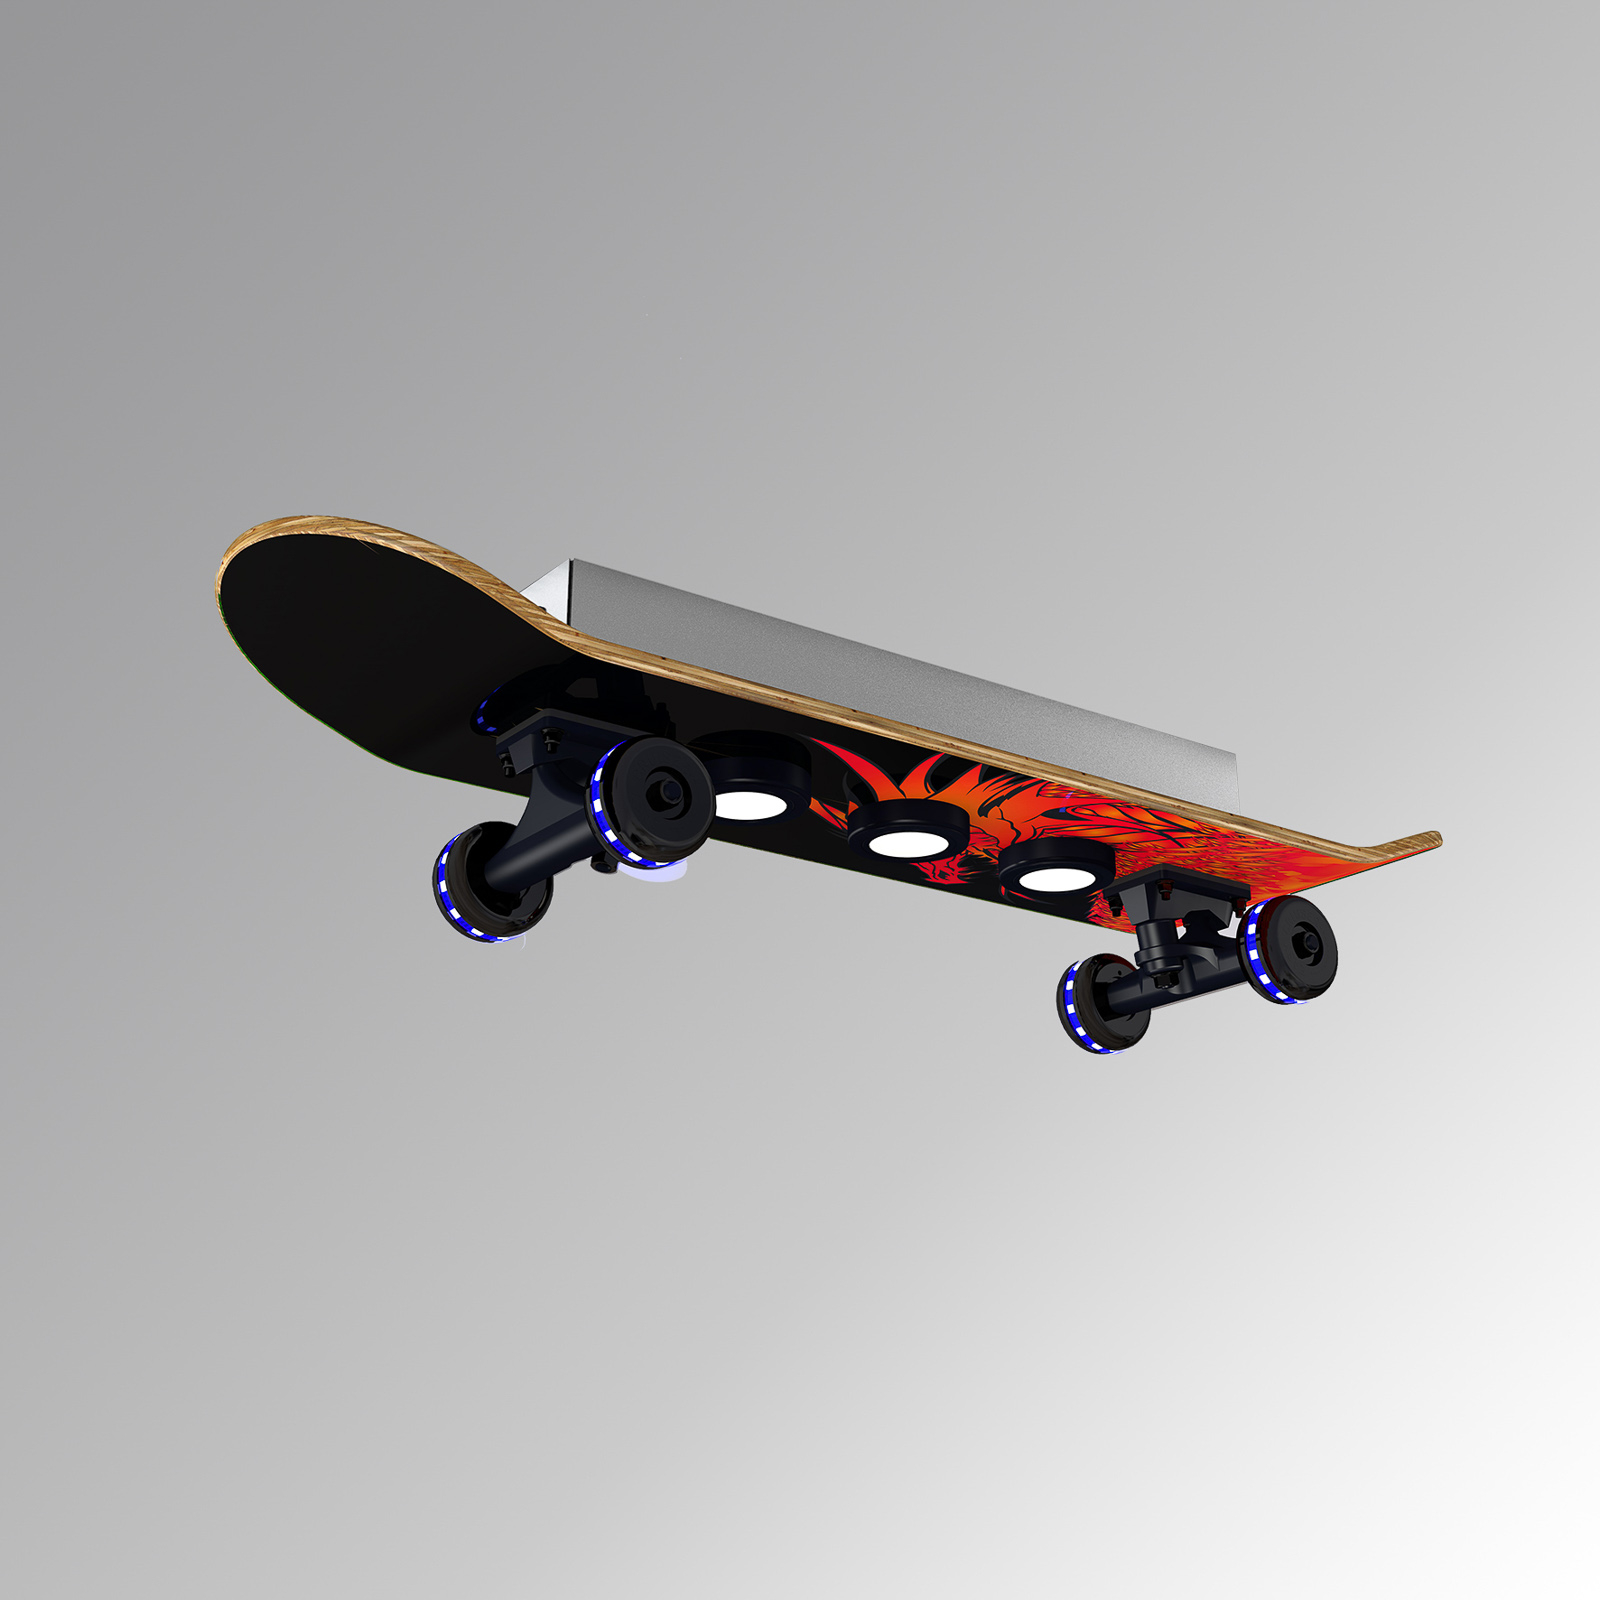 Lampa sufitowa Skateboard Easy Cruiser Dragon RGBW